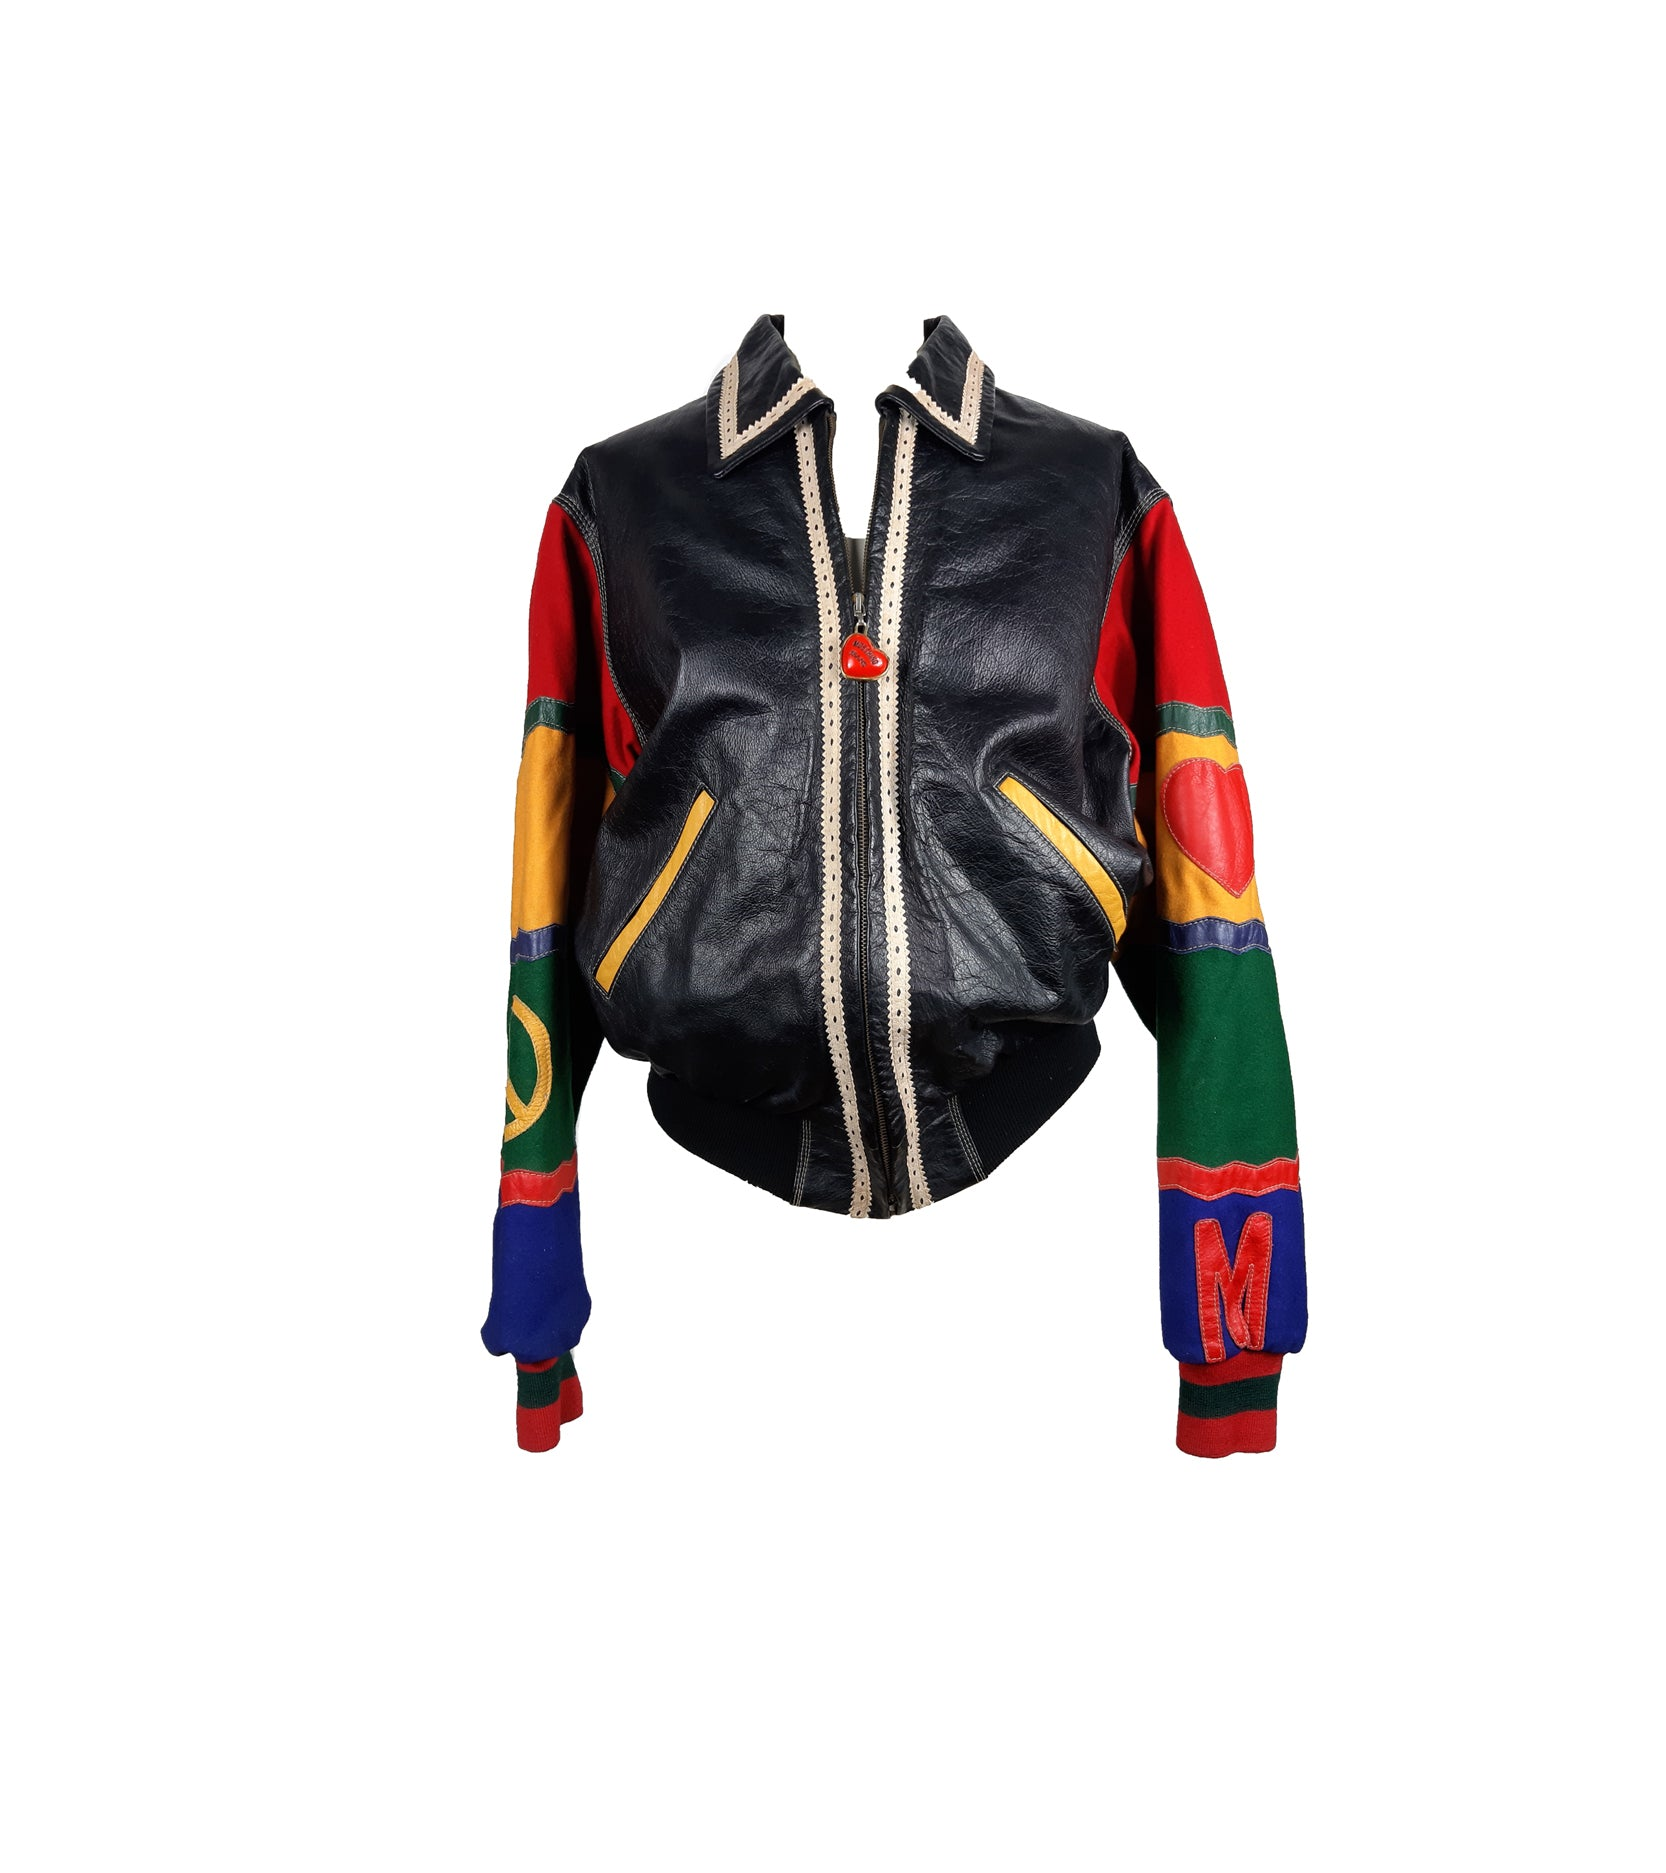 MOSCHINO Peace & Love Colorful Sleeved Bomber Styled Motorbike Leather Jacket Size 38 (EU)